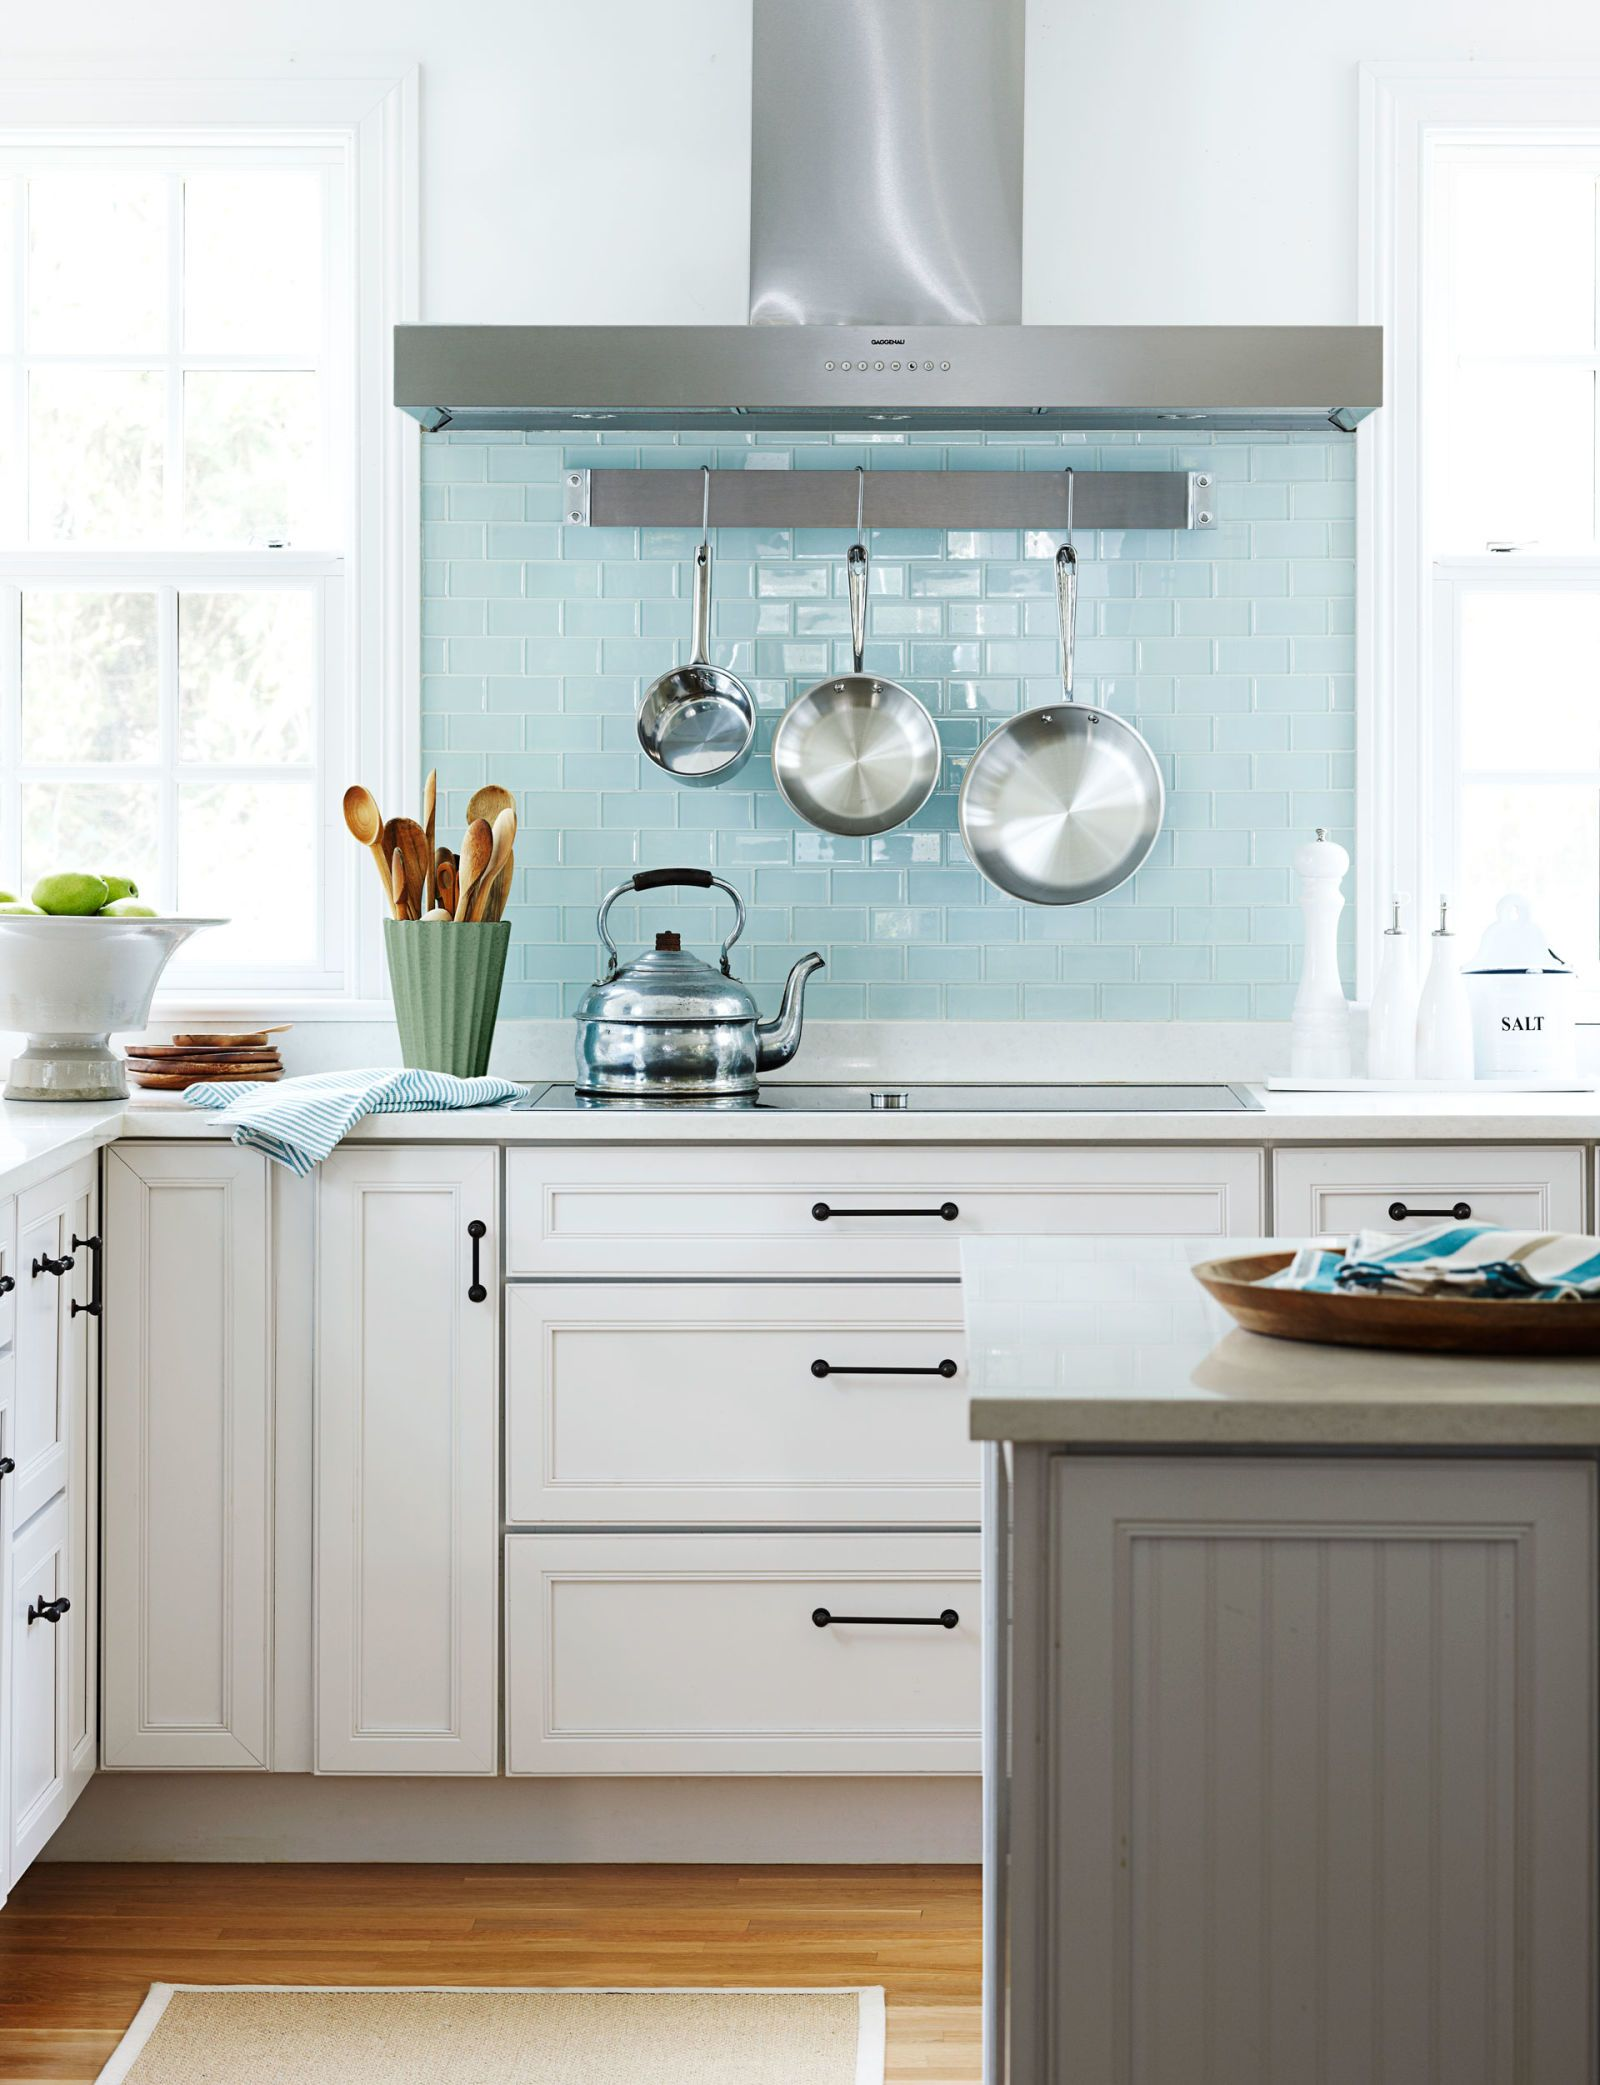 kitchen stove with pans hanging